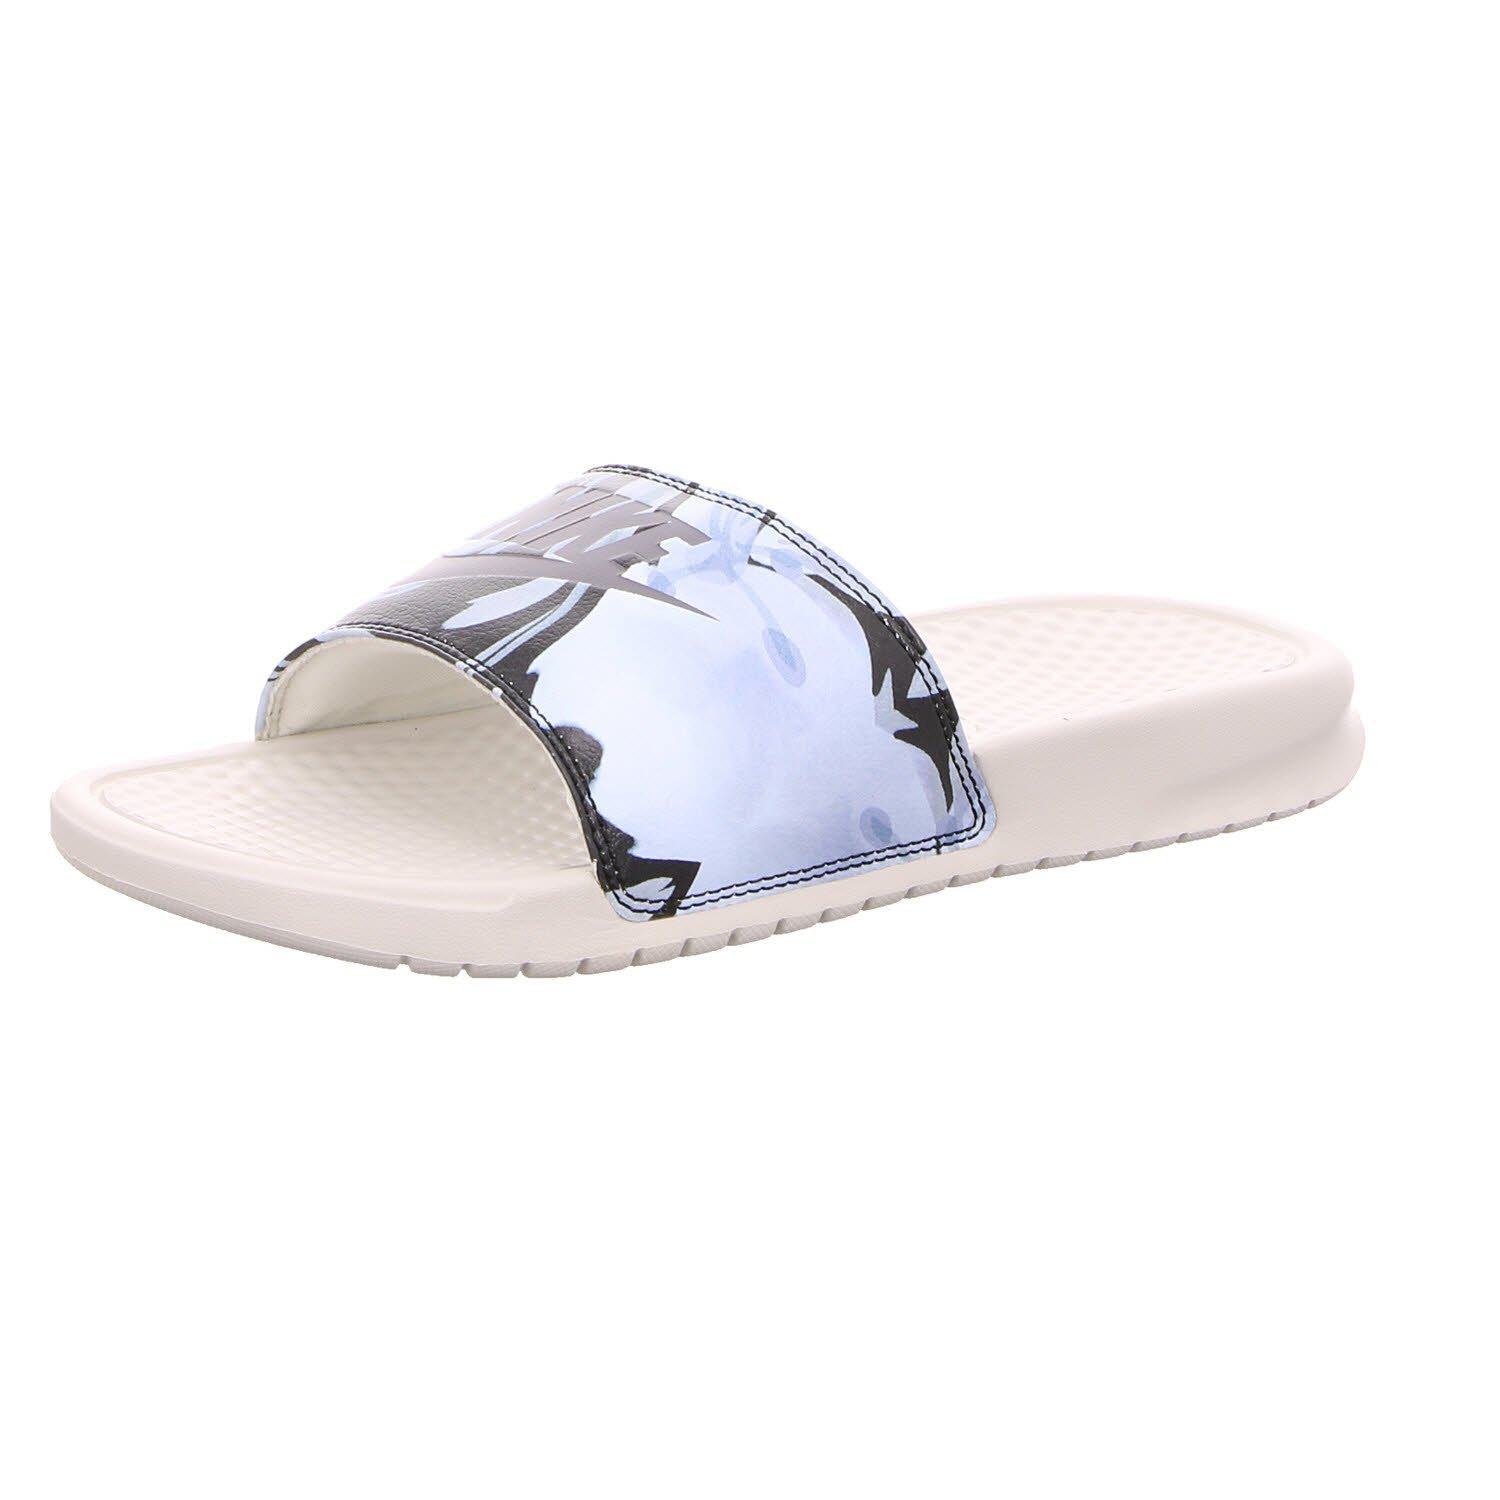 Nike Women's Benassi Just Do It. Sandal nk618919-015 (Light Bone/Light Carbon, 9 B(M) US)